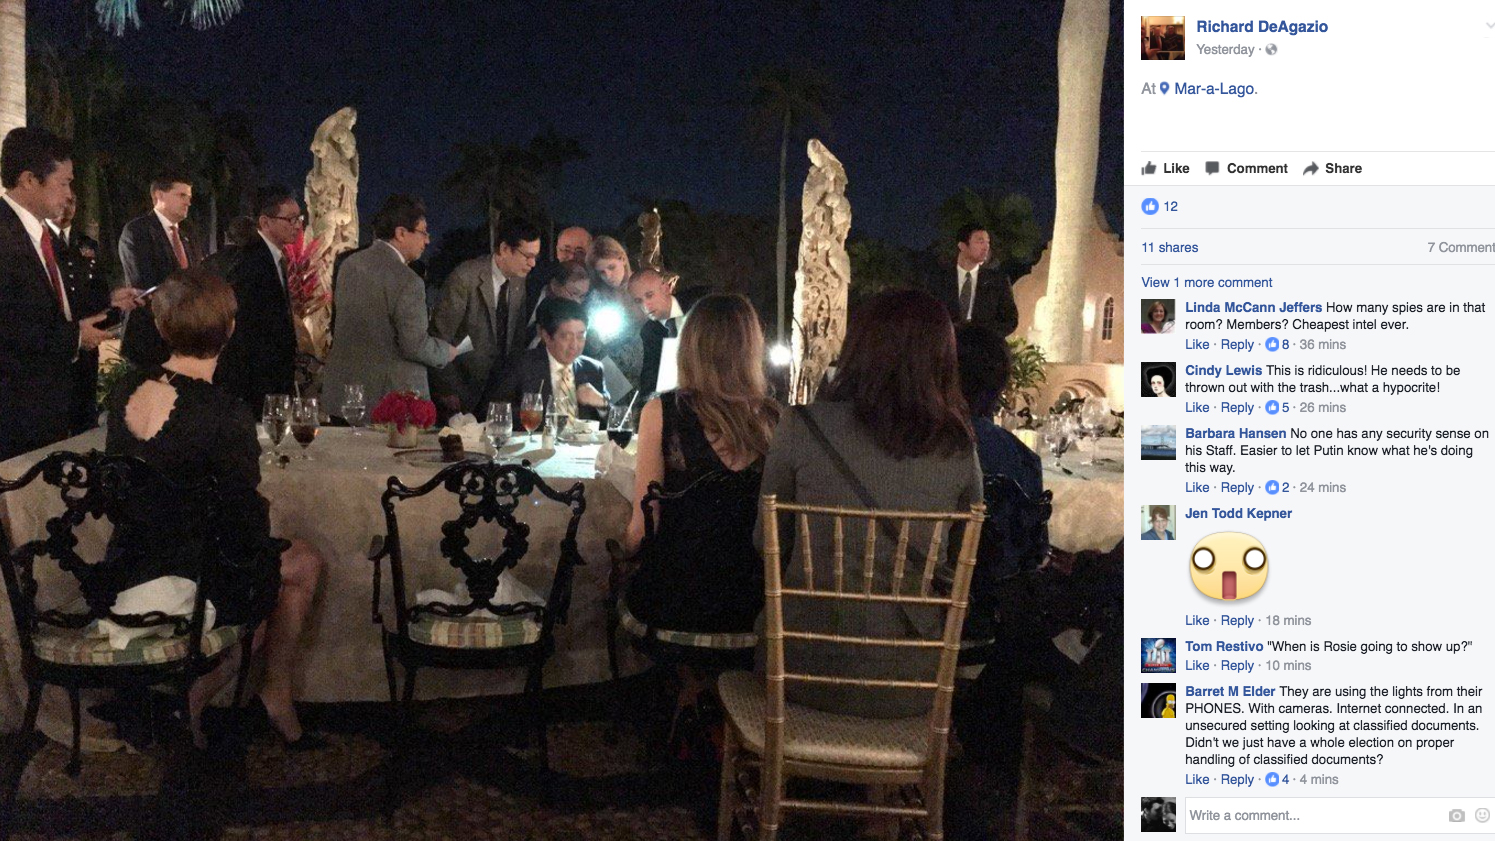 A screengrab of a photo posted on the Facebook page of Richard DeAgazio was said to show Japanese Prime Minister Shinzo Abe huddling with staffers during dinner at President Trump's Mar-a-Lago residence after news spread about North Korea's missile launch.